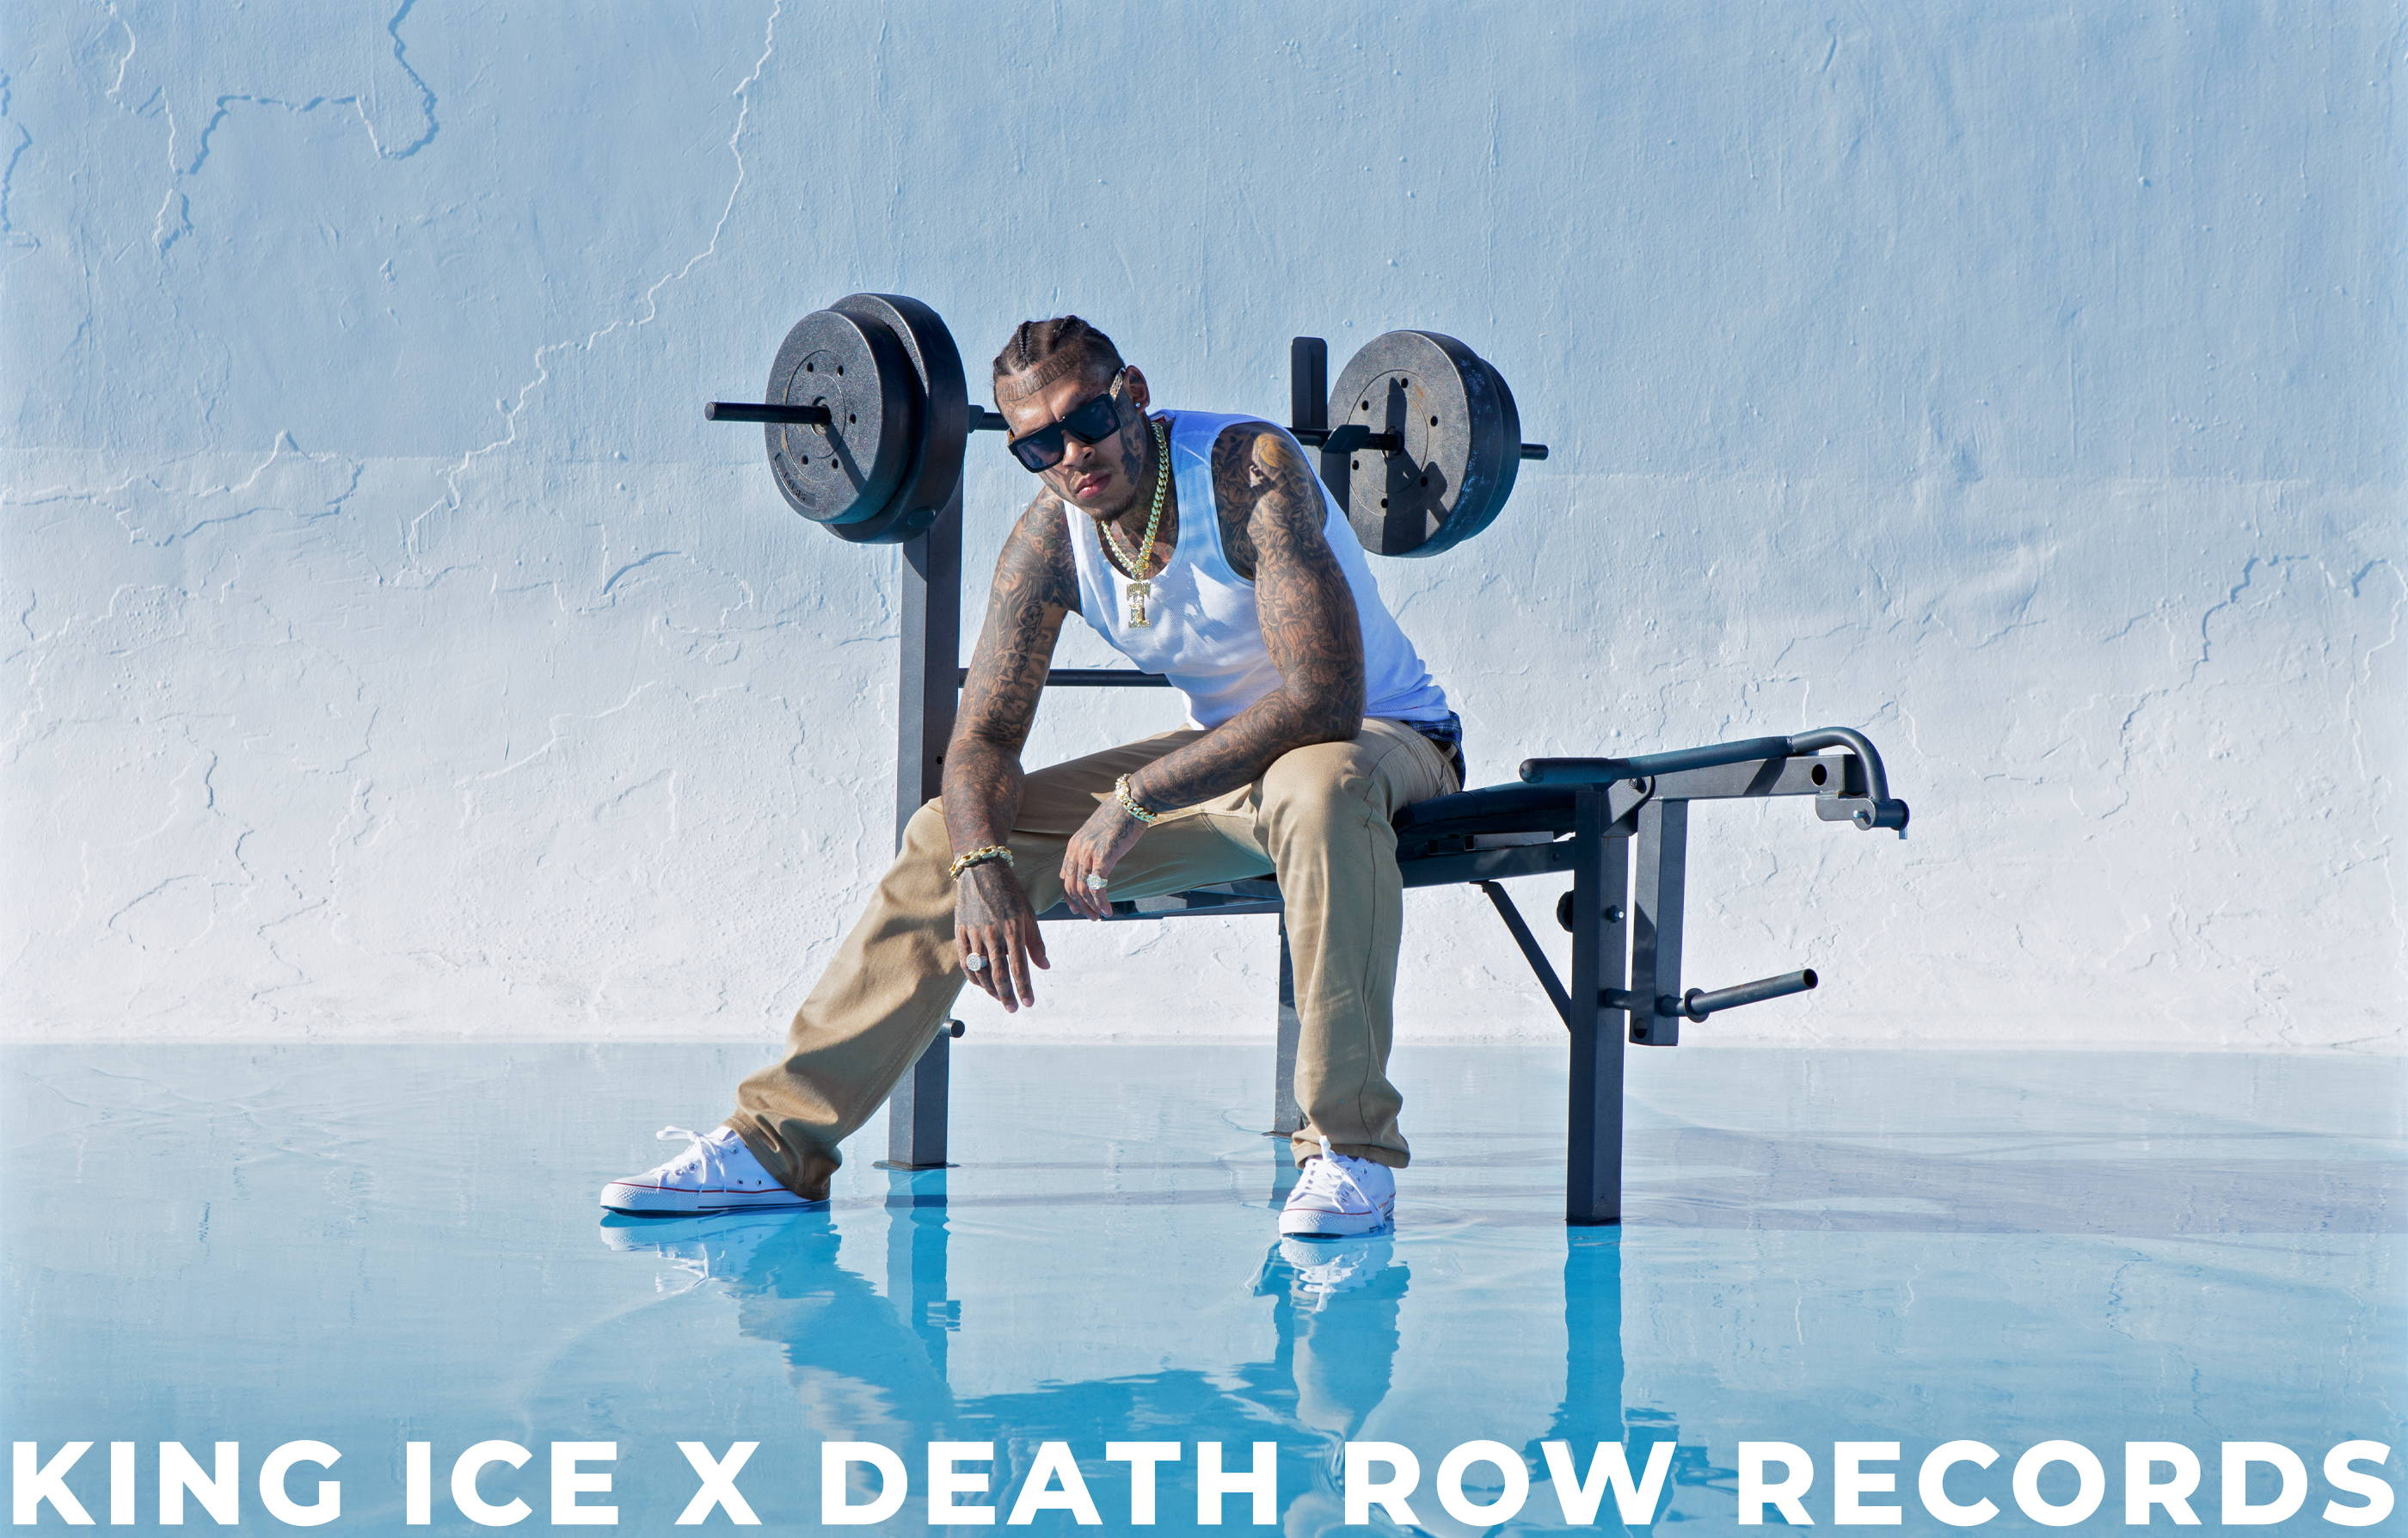 Ink Monster model the official King Ice X Death Row Records collaboration collection.